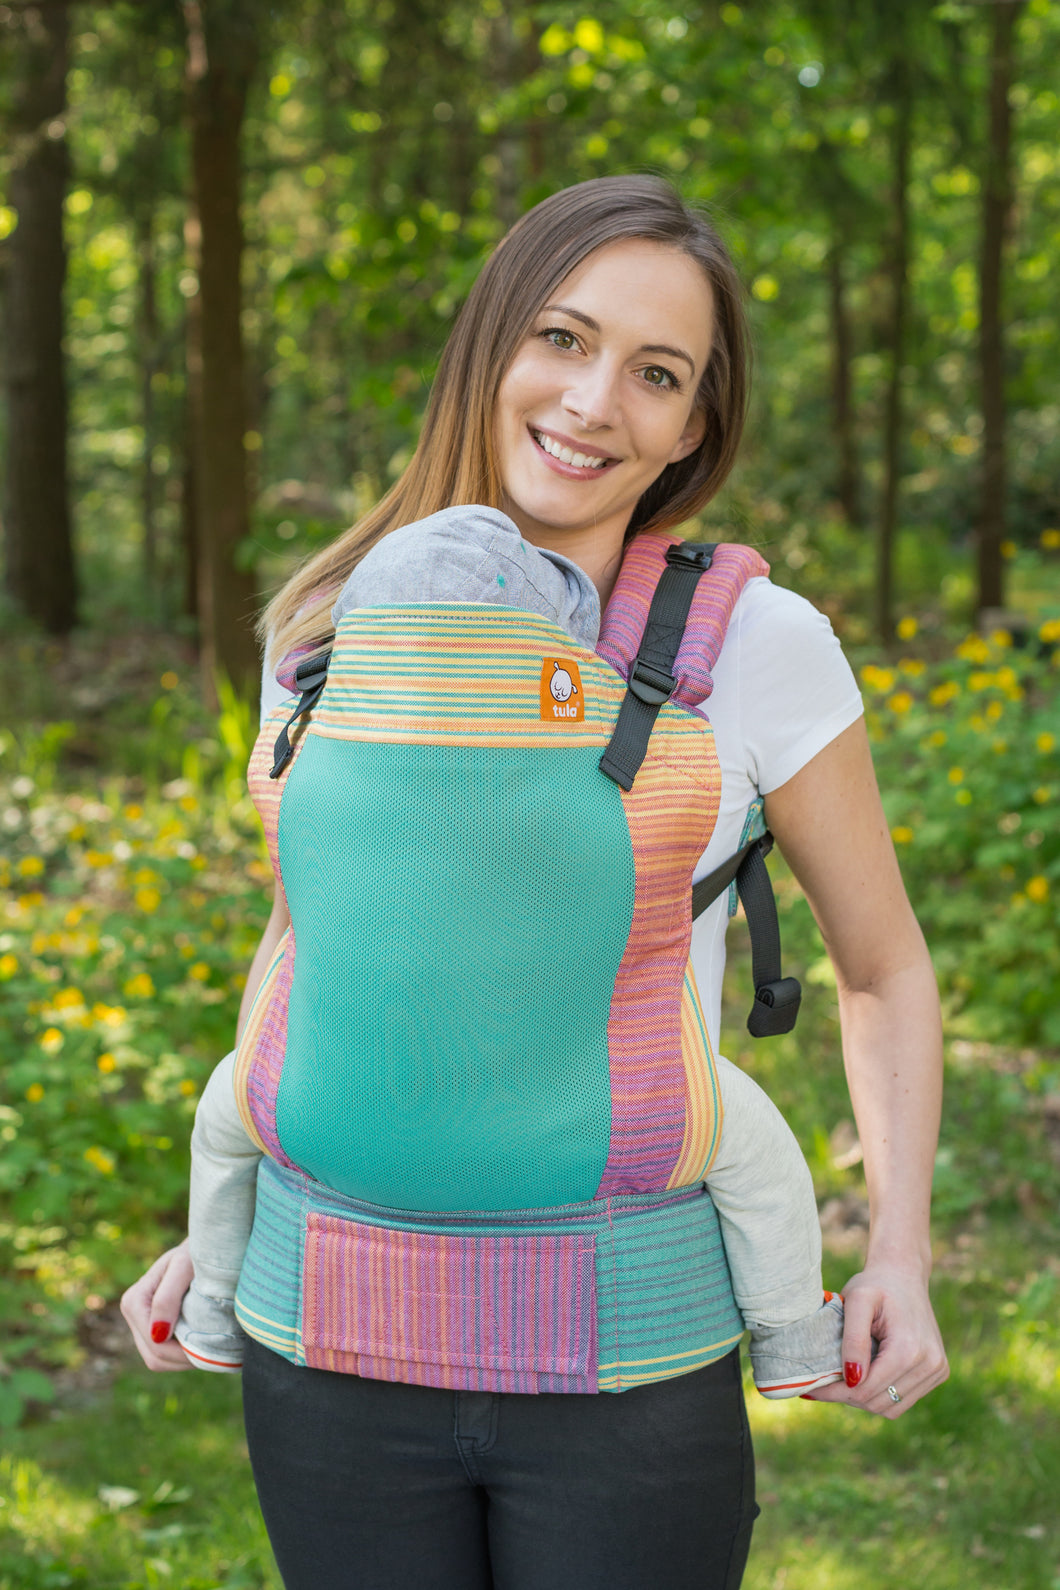 Full Coast Toddler Wrap Conversion Carrier - Iris - Baby Tula